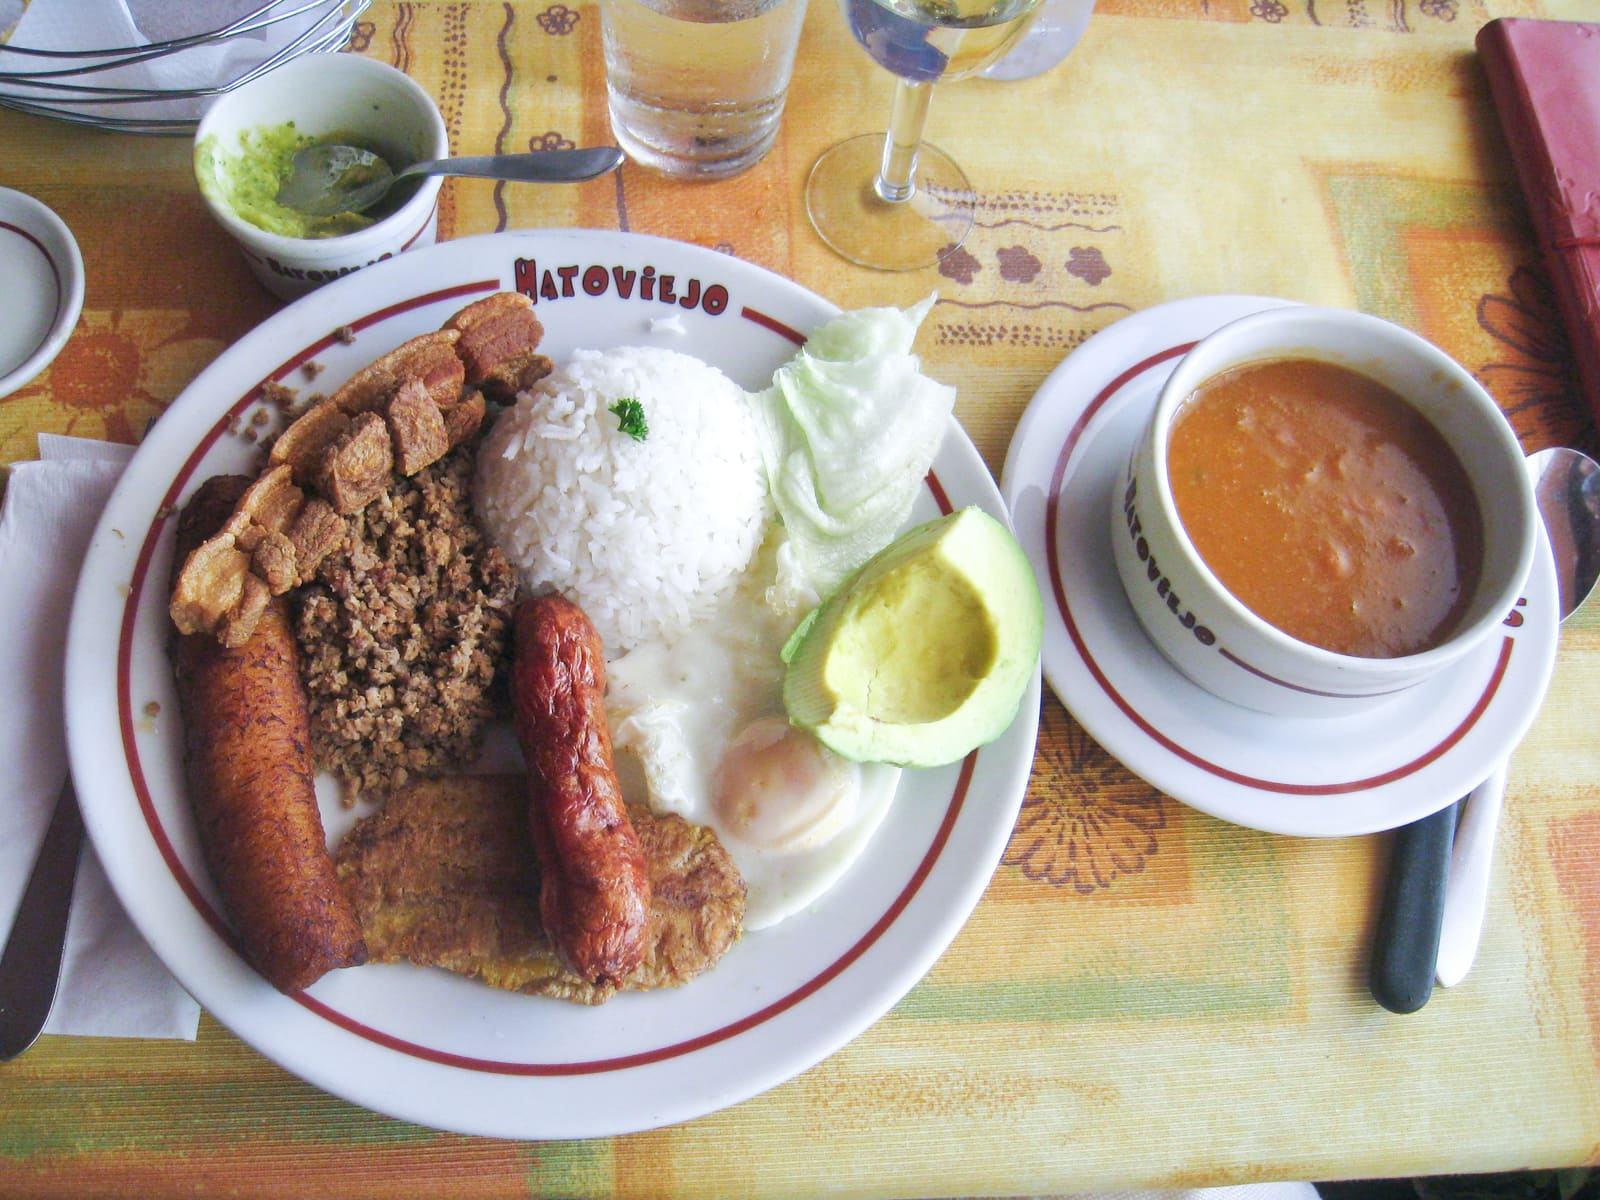 Bandeja Paisa at Hatoviejo in downtown Medellín, Colombia